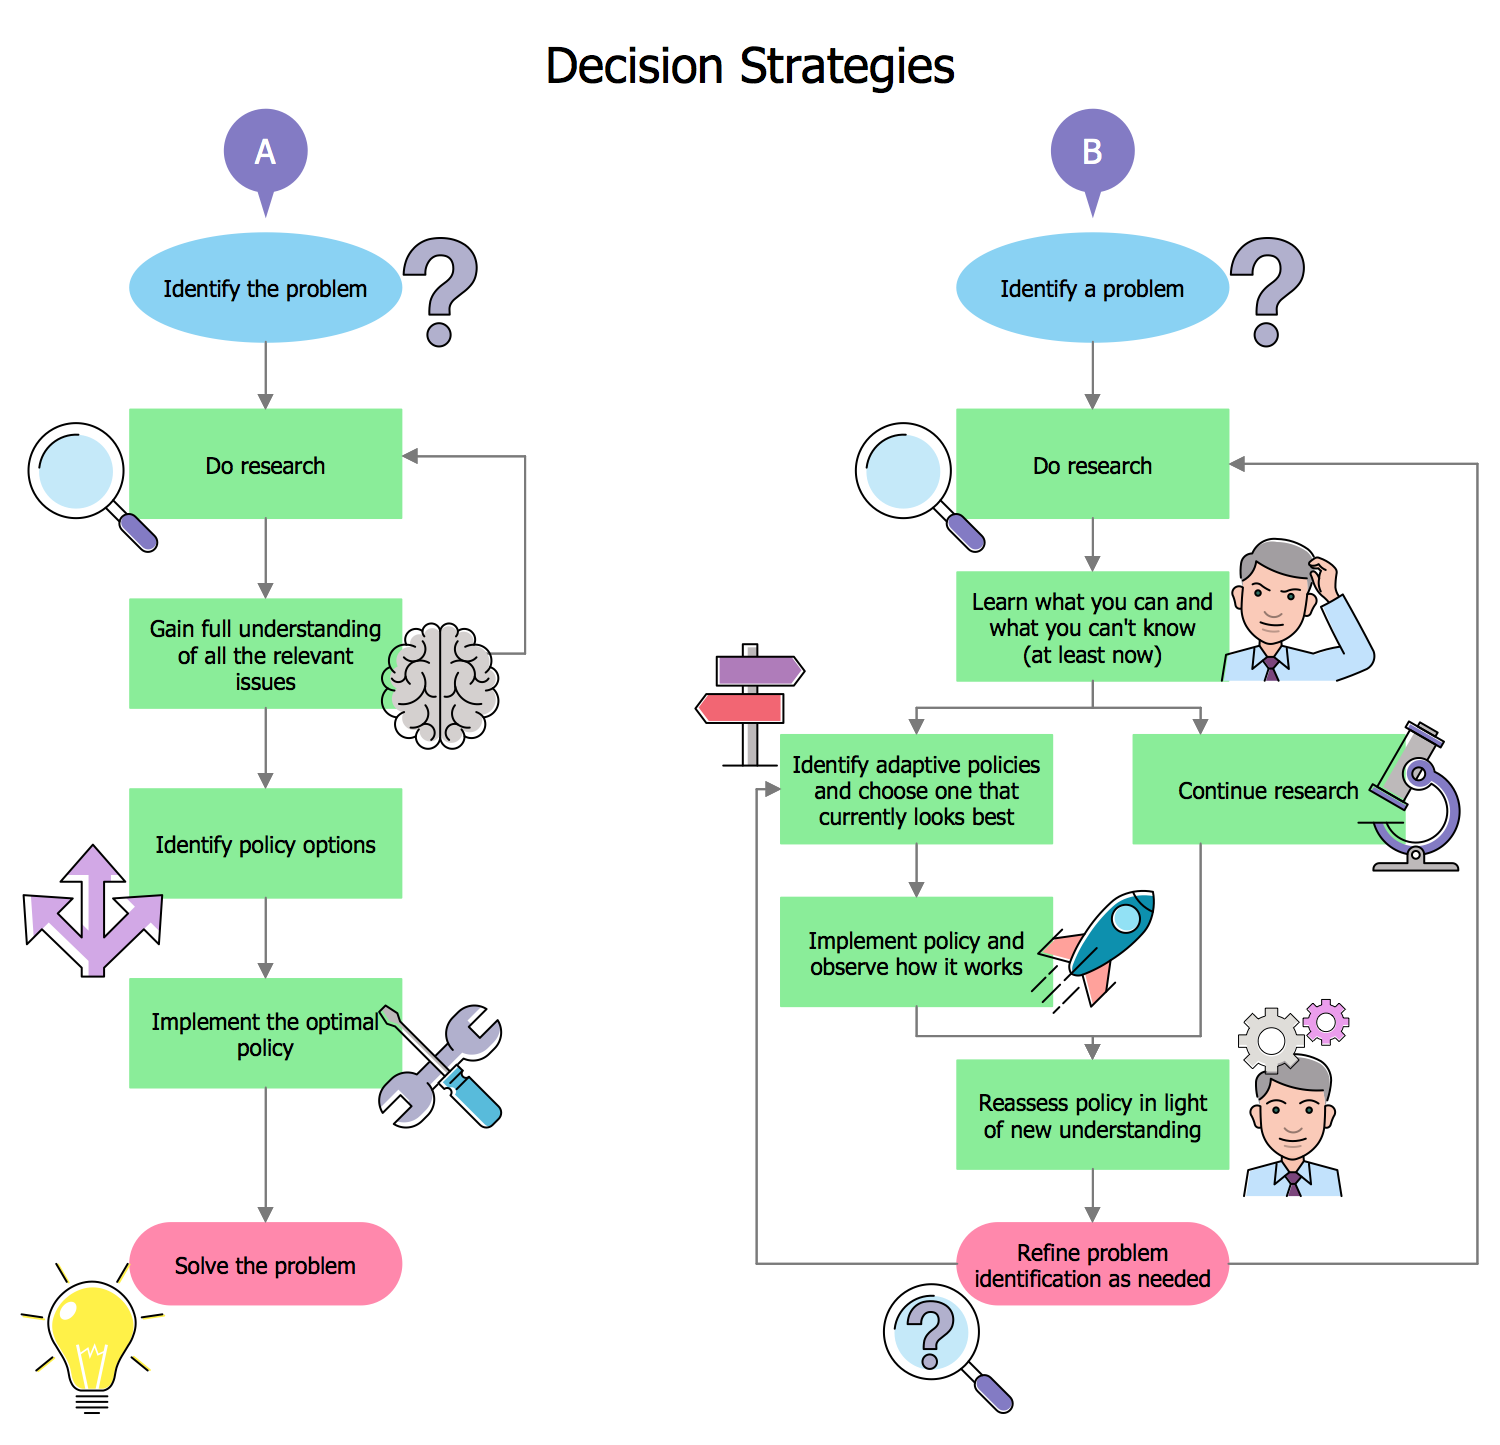 Decision Strategies